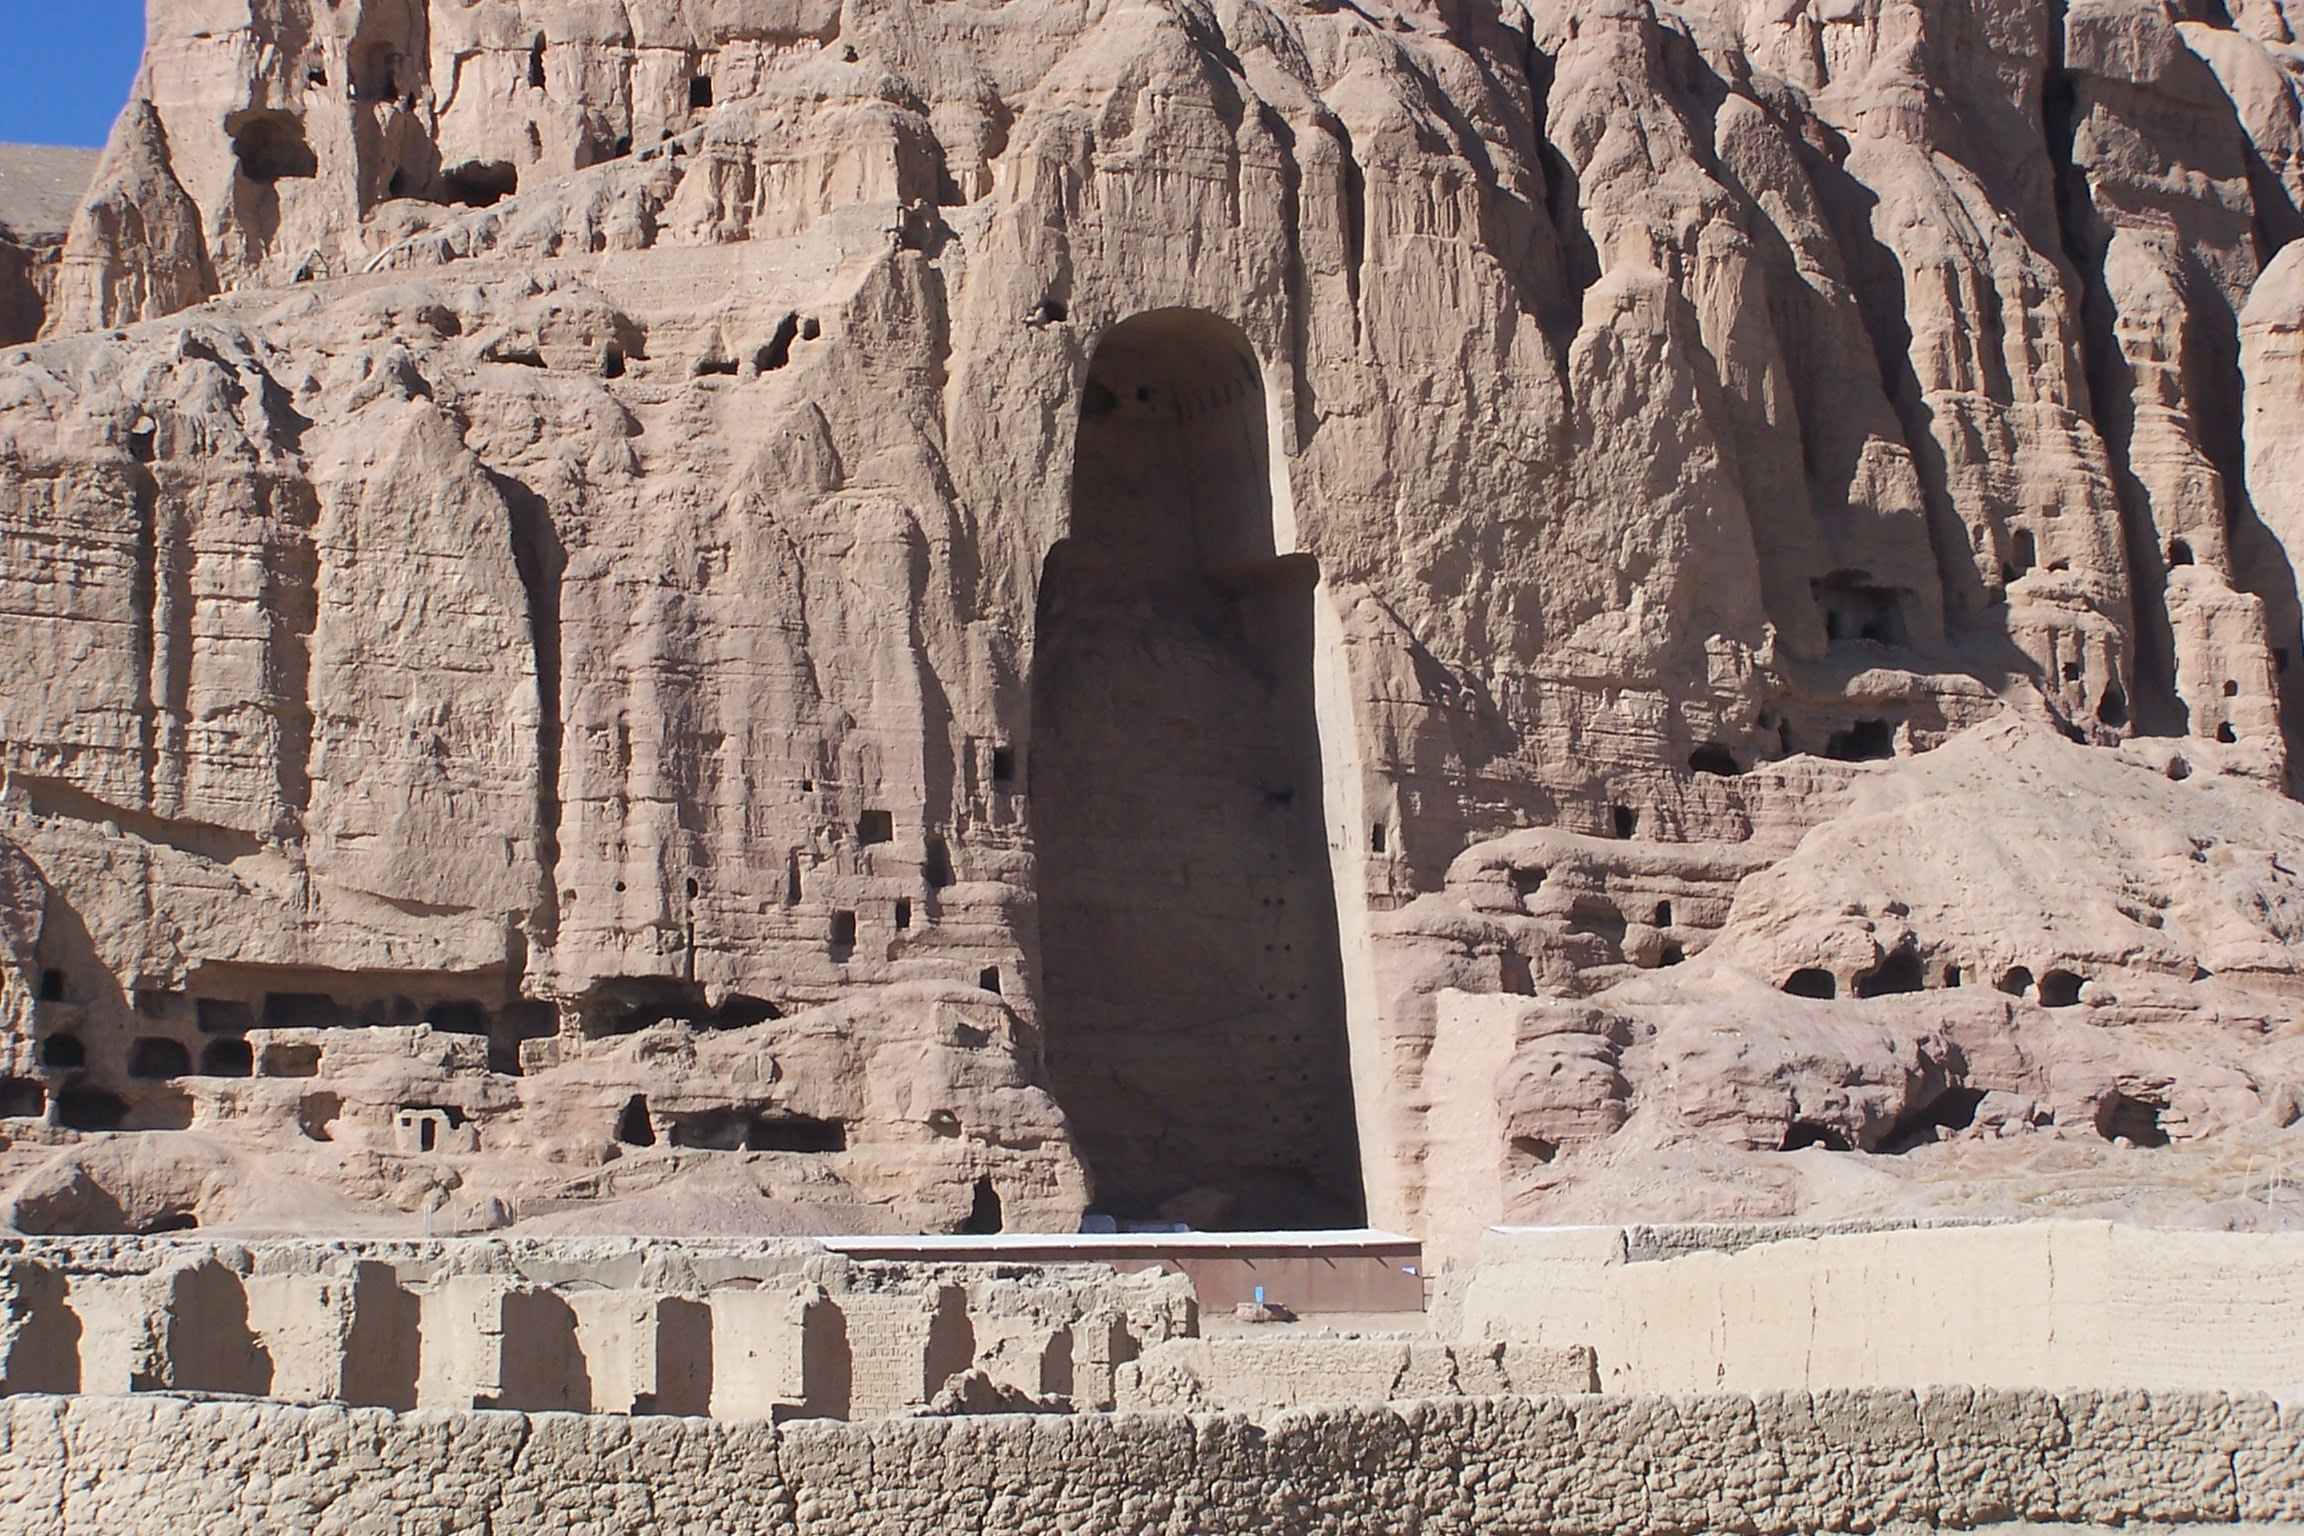 Remains of the Buddhas of Bamiyan, Afganistan © Carlos Ugarte, licensed under  CC BY 2.0  and adapted from the original